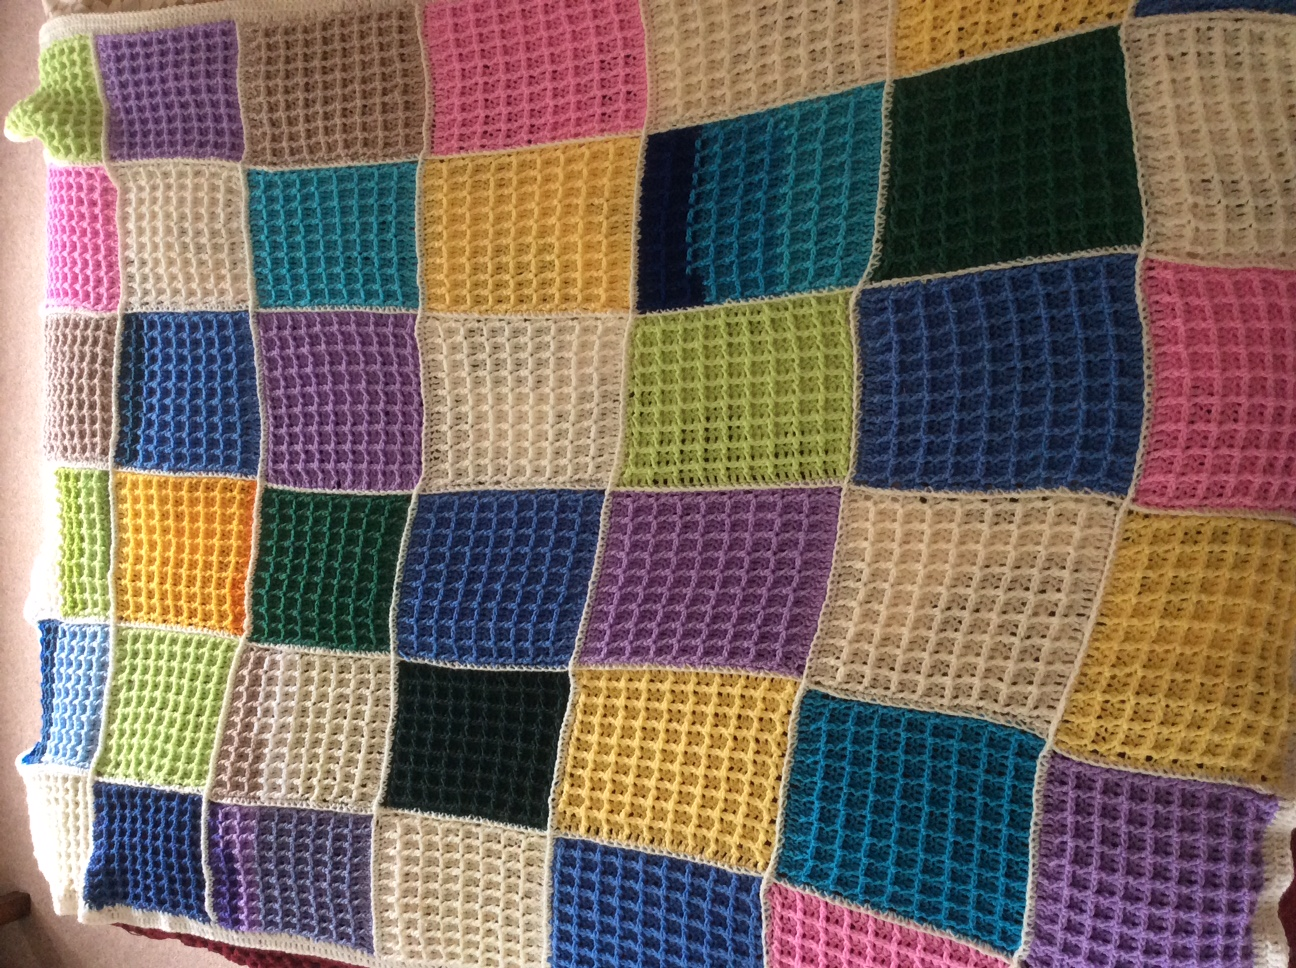 Beautifully crocheted large throw in multi-coloured squares